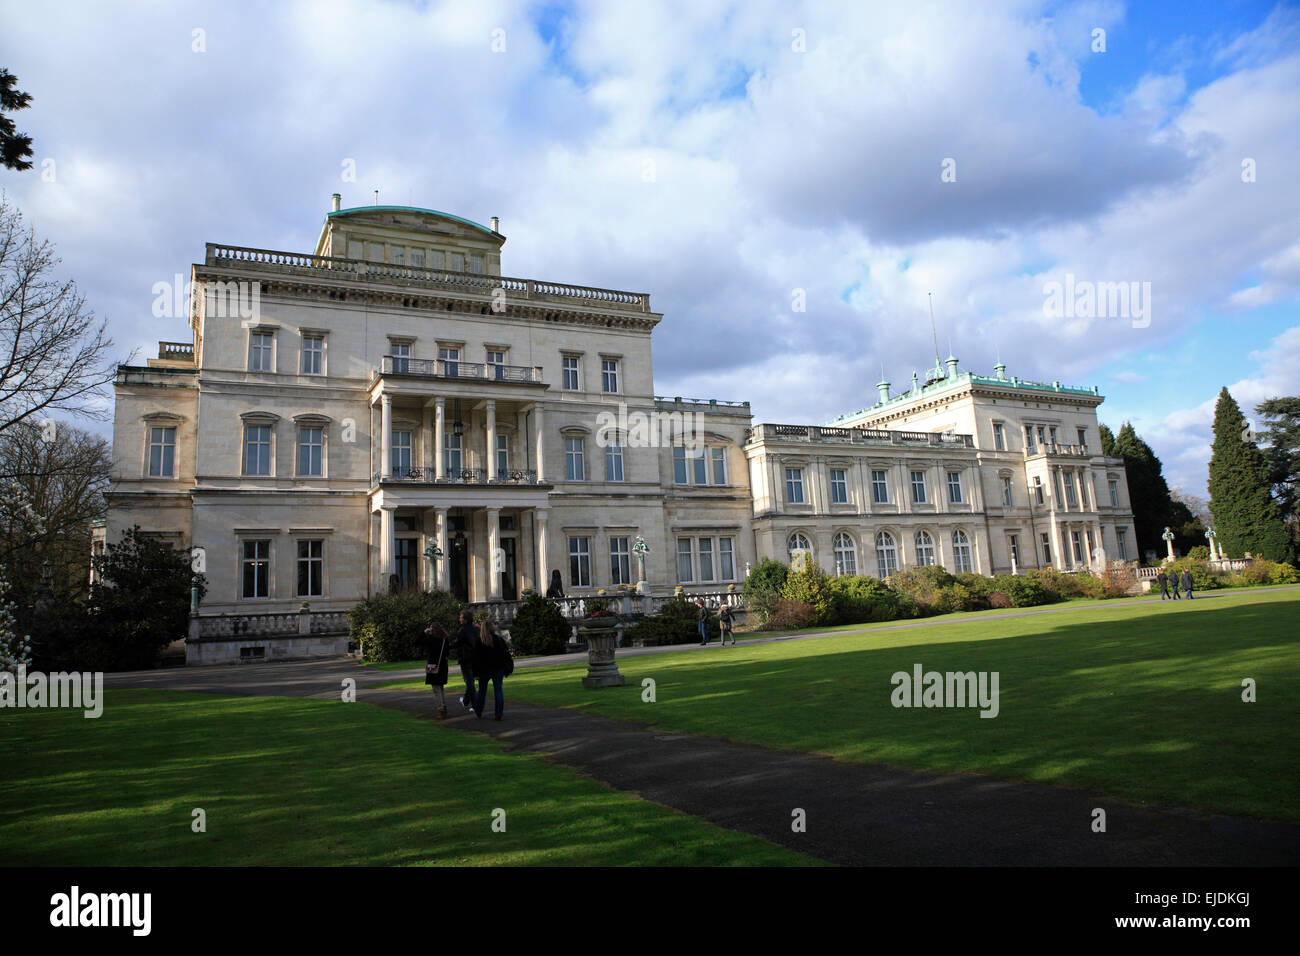 Villa Huegel Essen, Nordrhine Westphalia, Germany, Europe - Stock Image